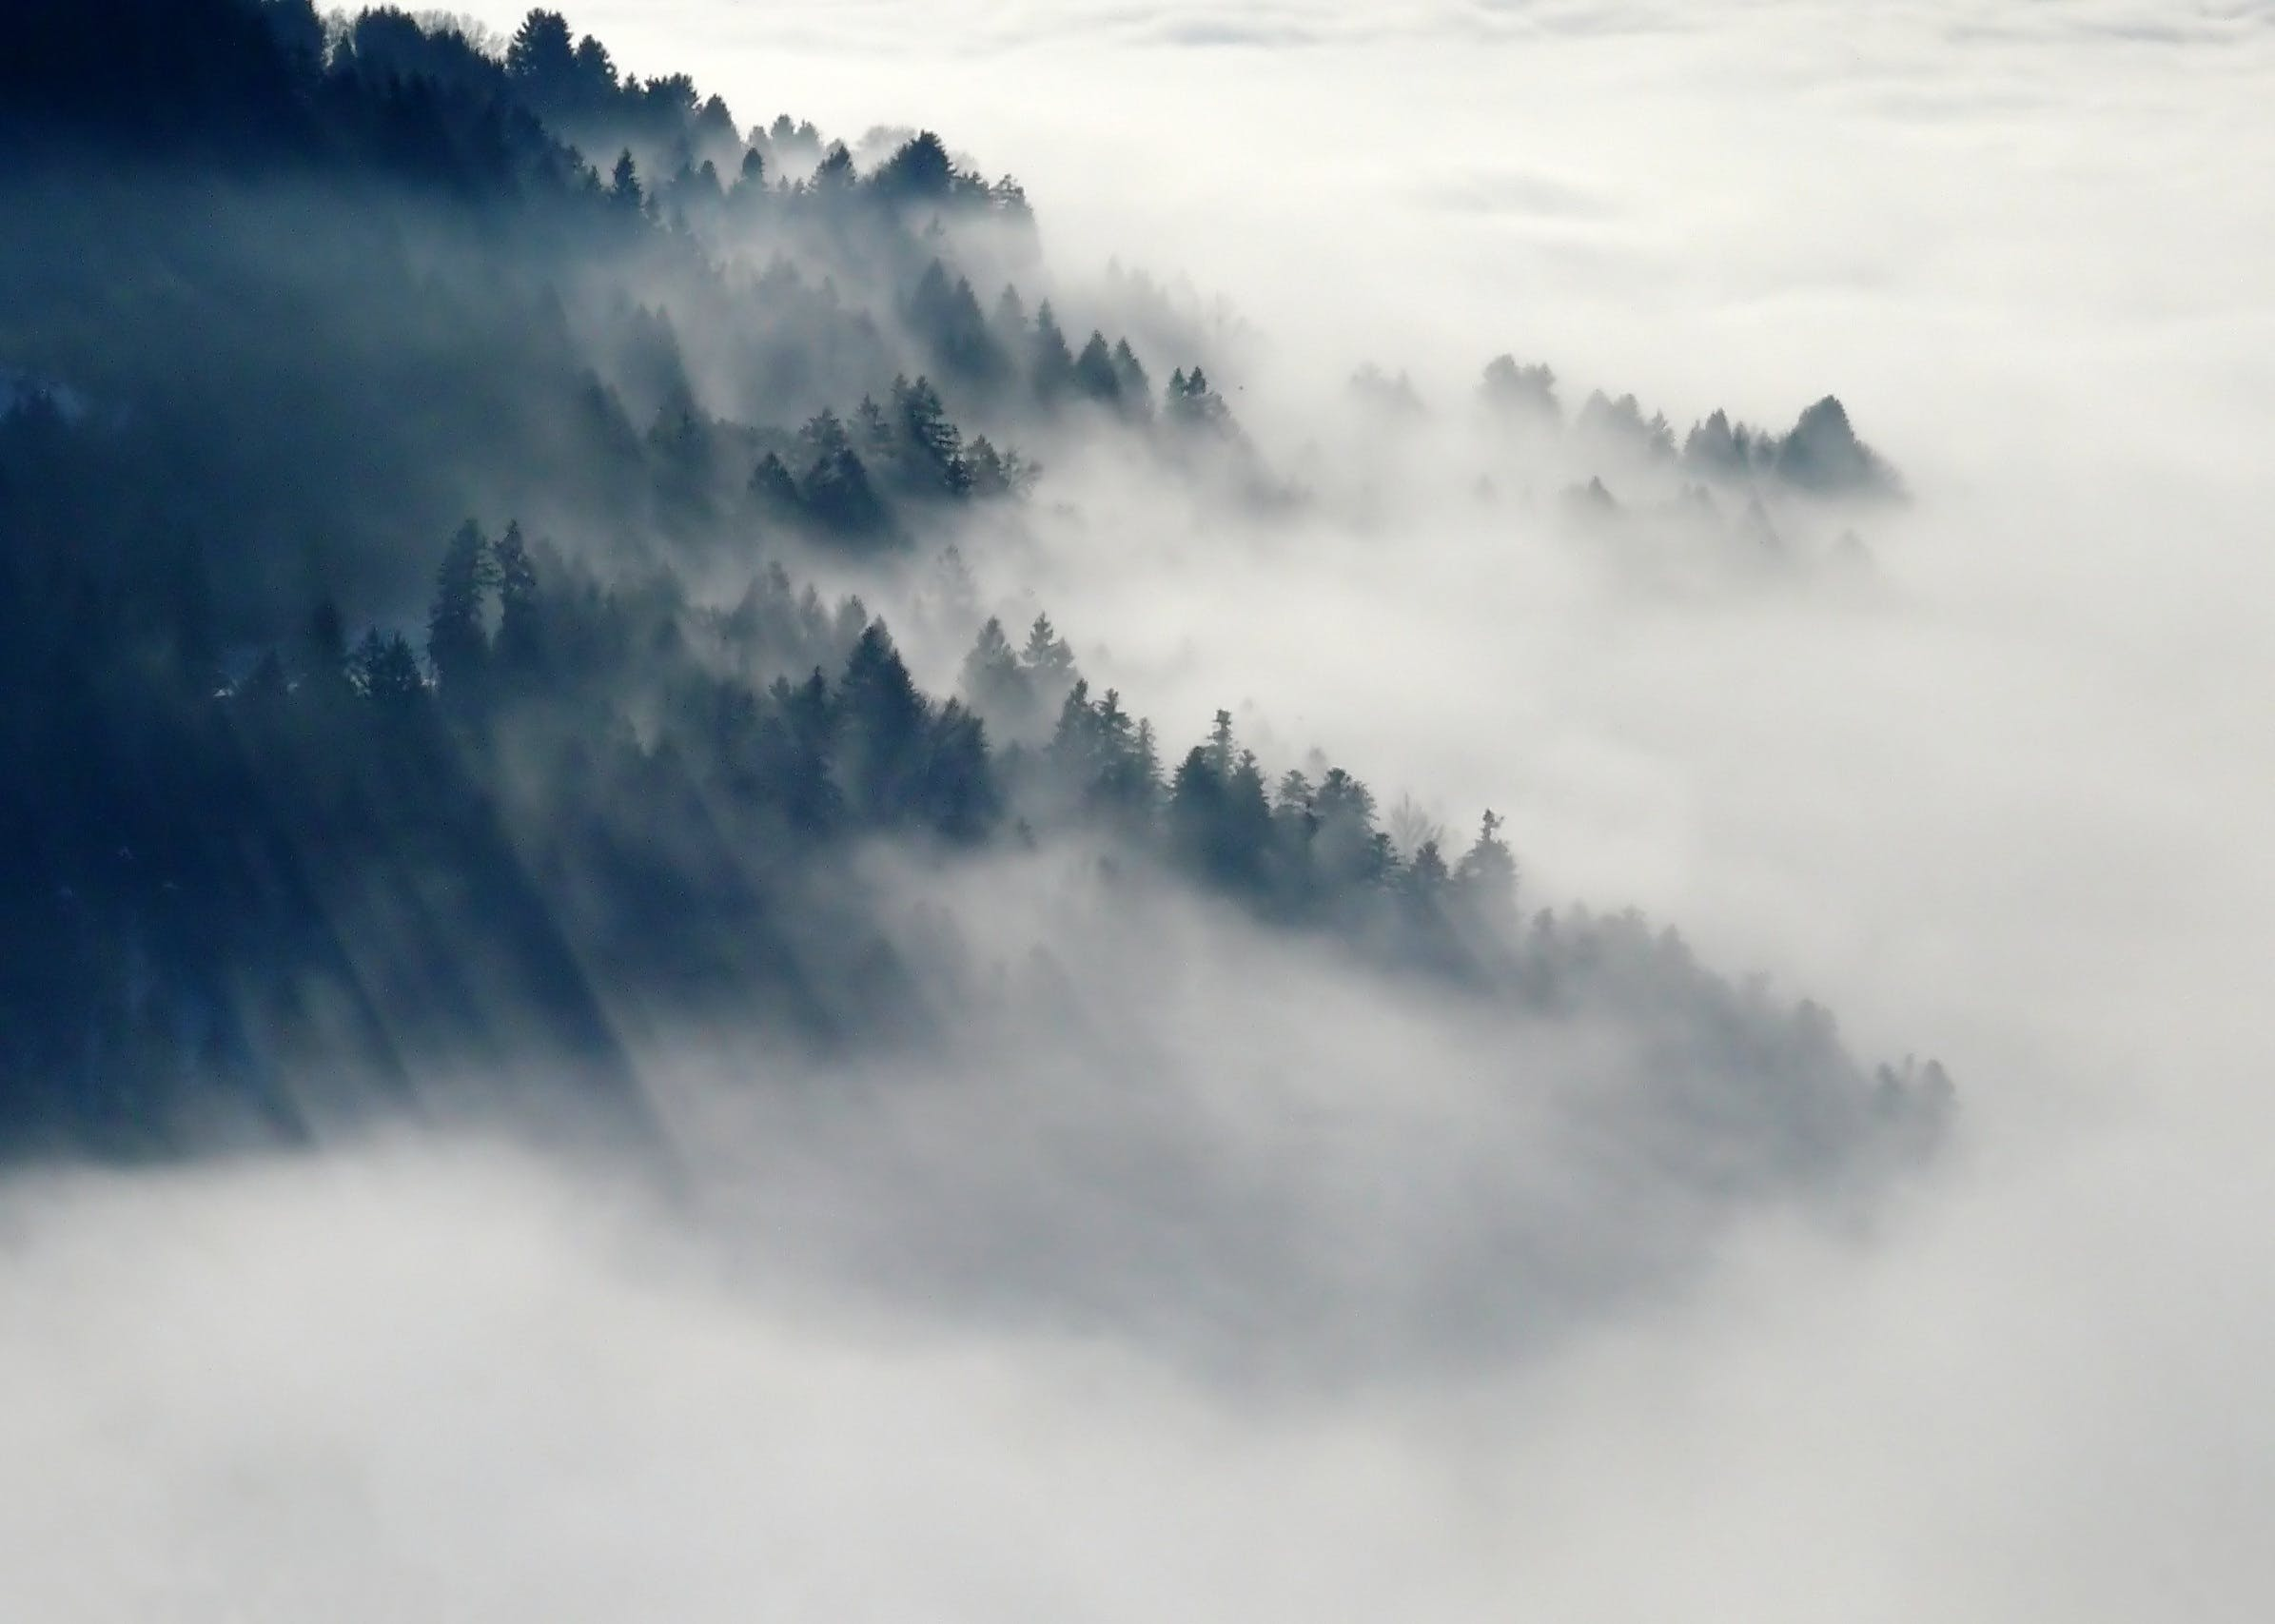 Mountain With Green Leaved Trees Surrounded by Fog during Daytime